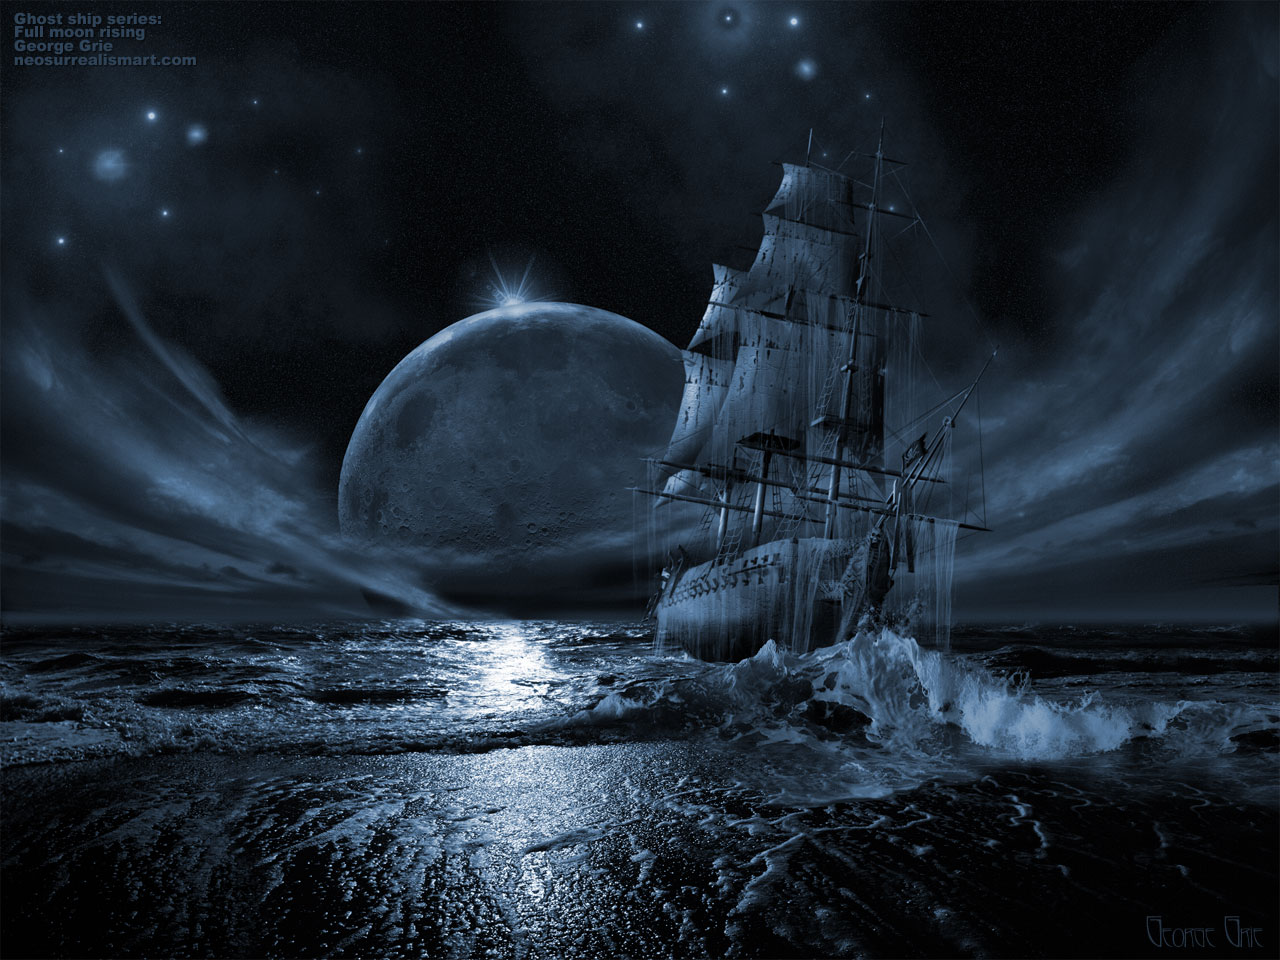 backgrounds by 3D artist George Grie: Ghost ship series: Full moon 1897